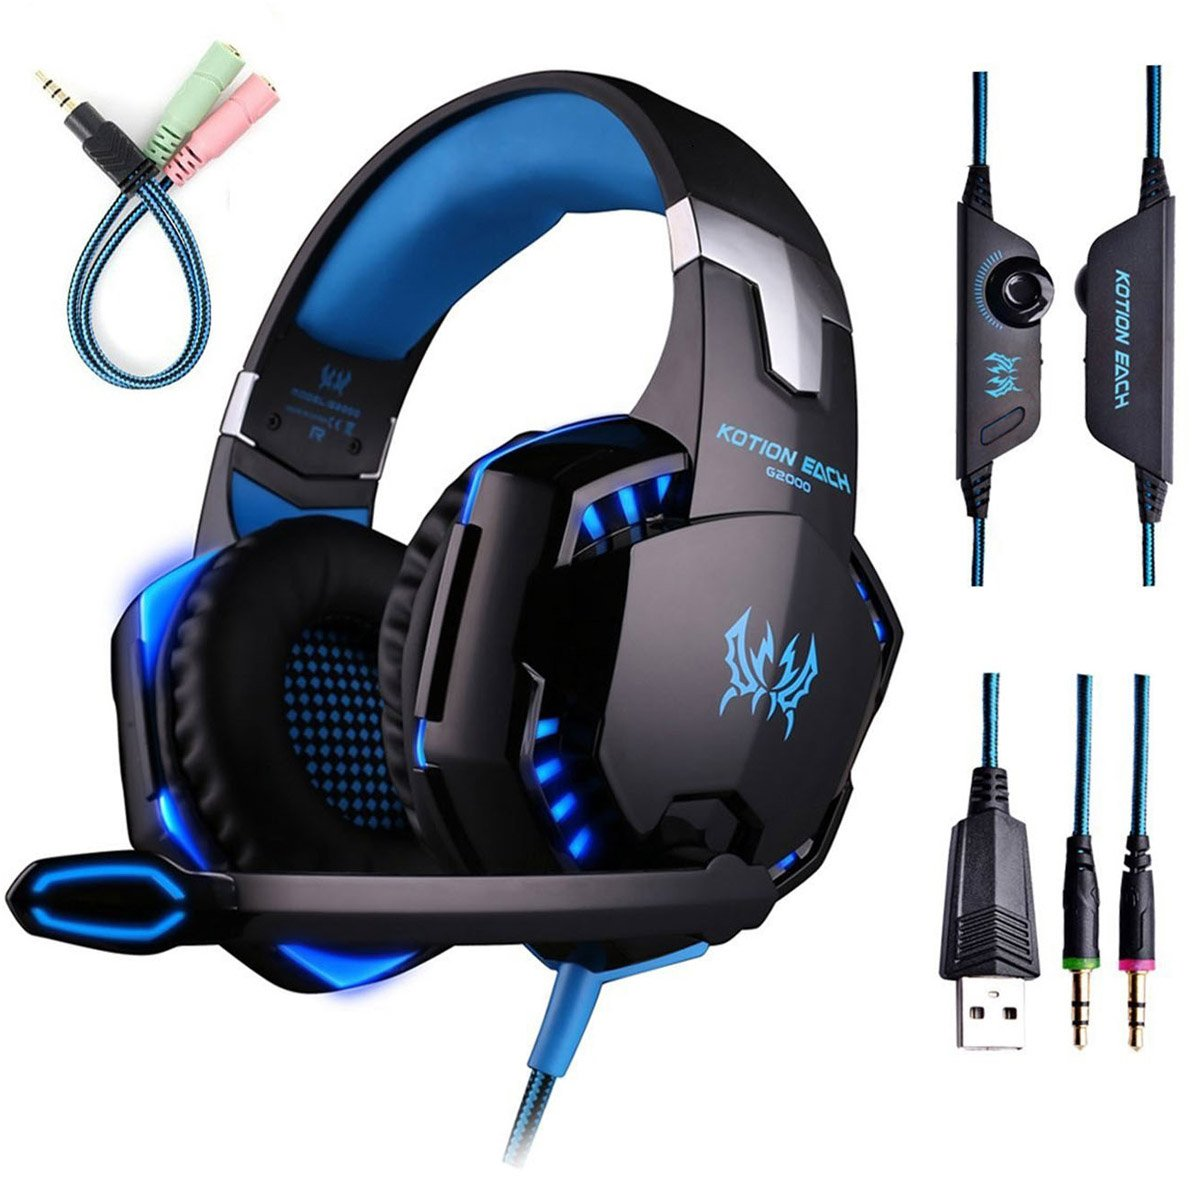 Gaming Headset with Mic for PC,PS4,Xbox One,Over-ear Headphones with Volume Control LED Light Cool Style Stereo,Noise Reduction for Laptops,Smartphone,Computer (Black & Blue) by ENVEL